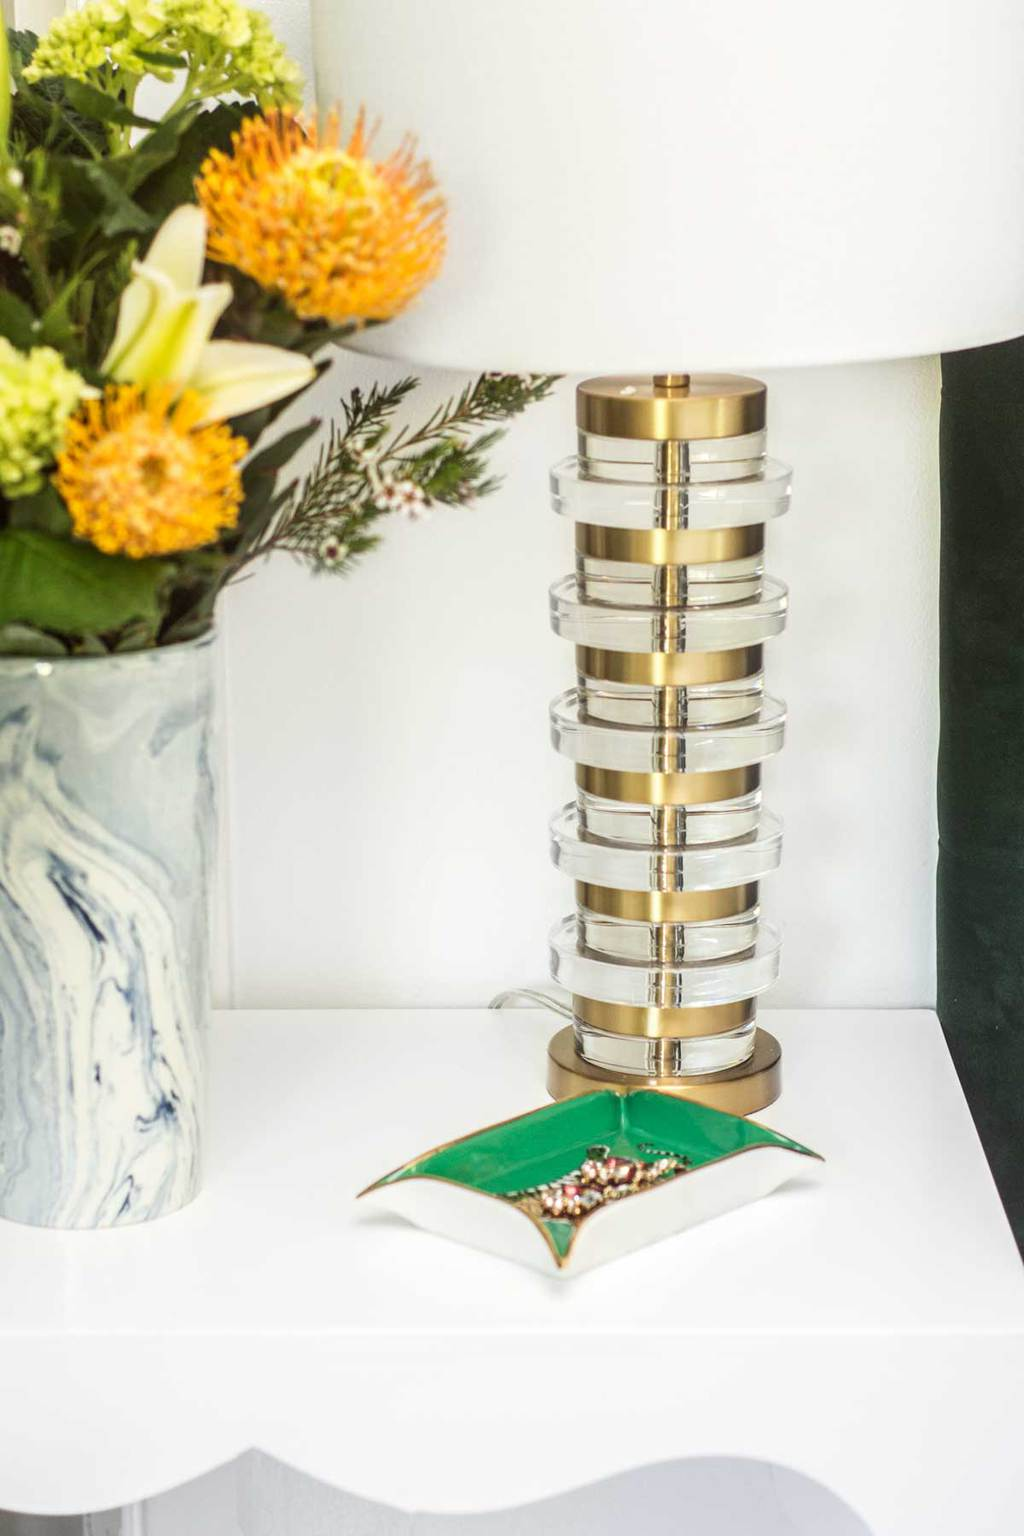 Brass table lamp and blue marbleized vase on bedside table via Thou Swell @thouswellblog